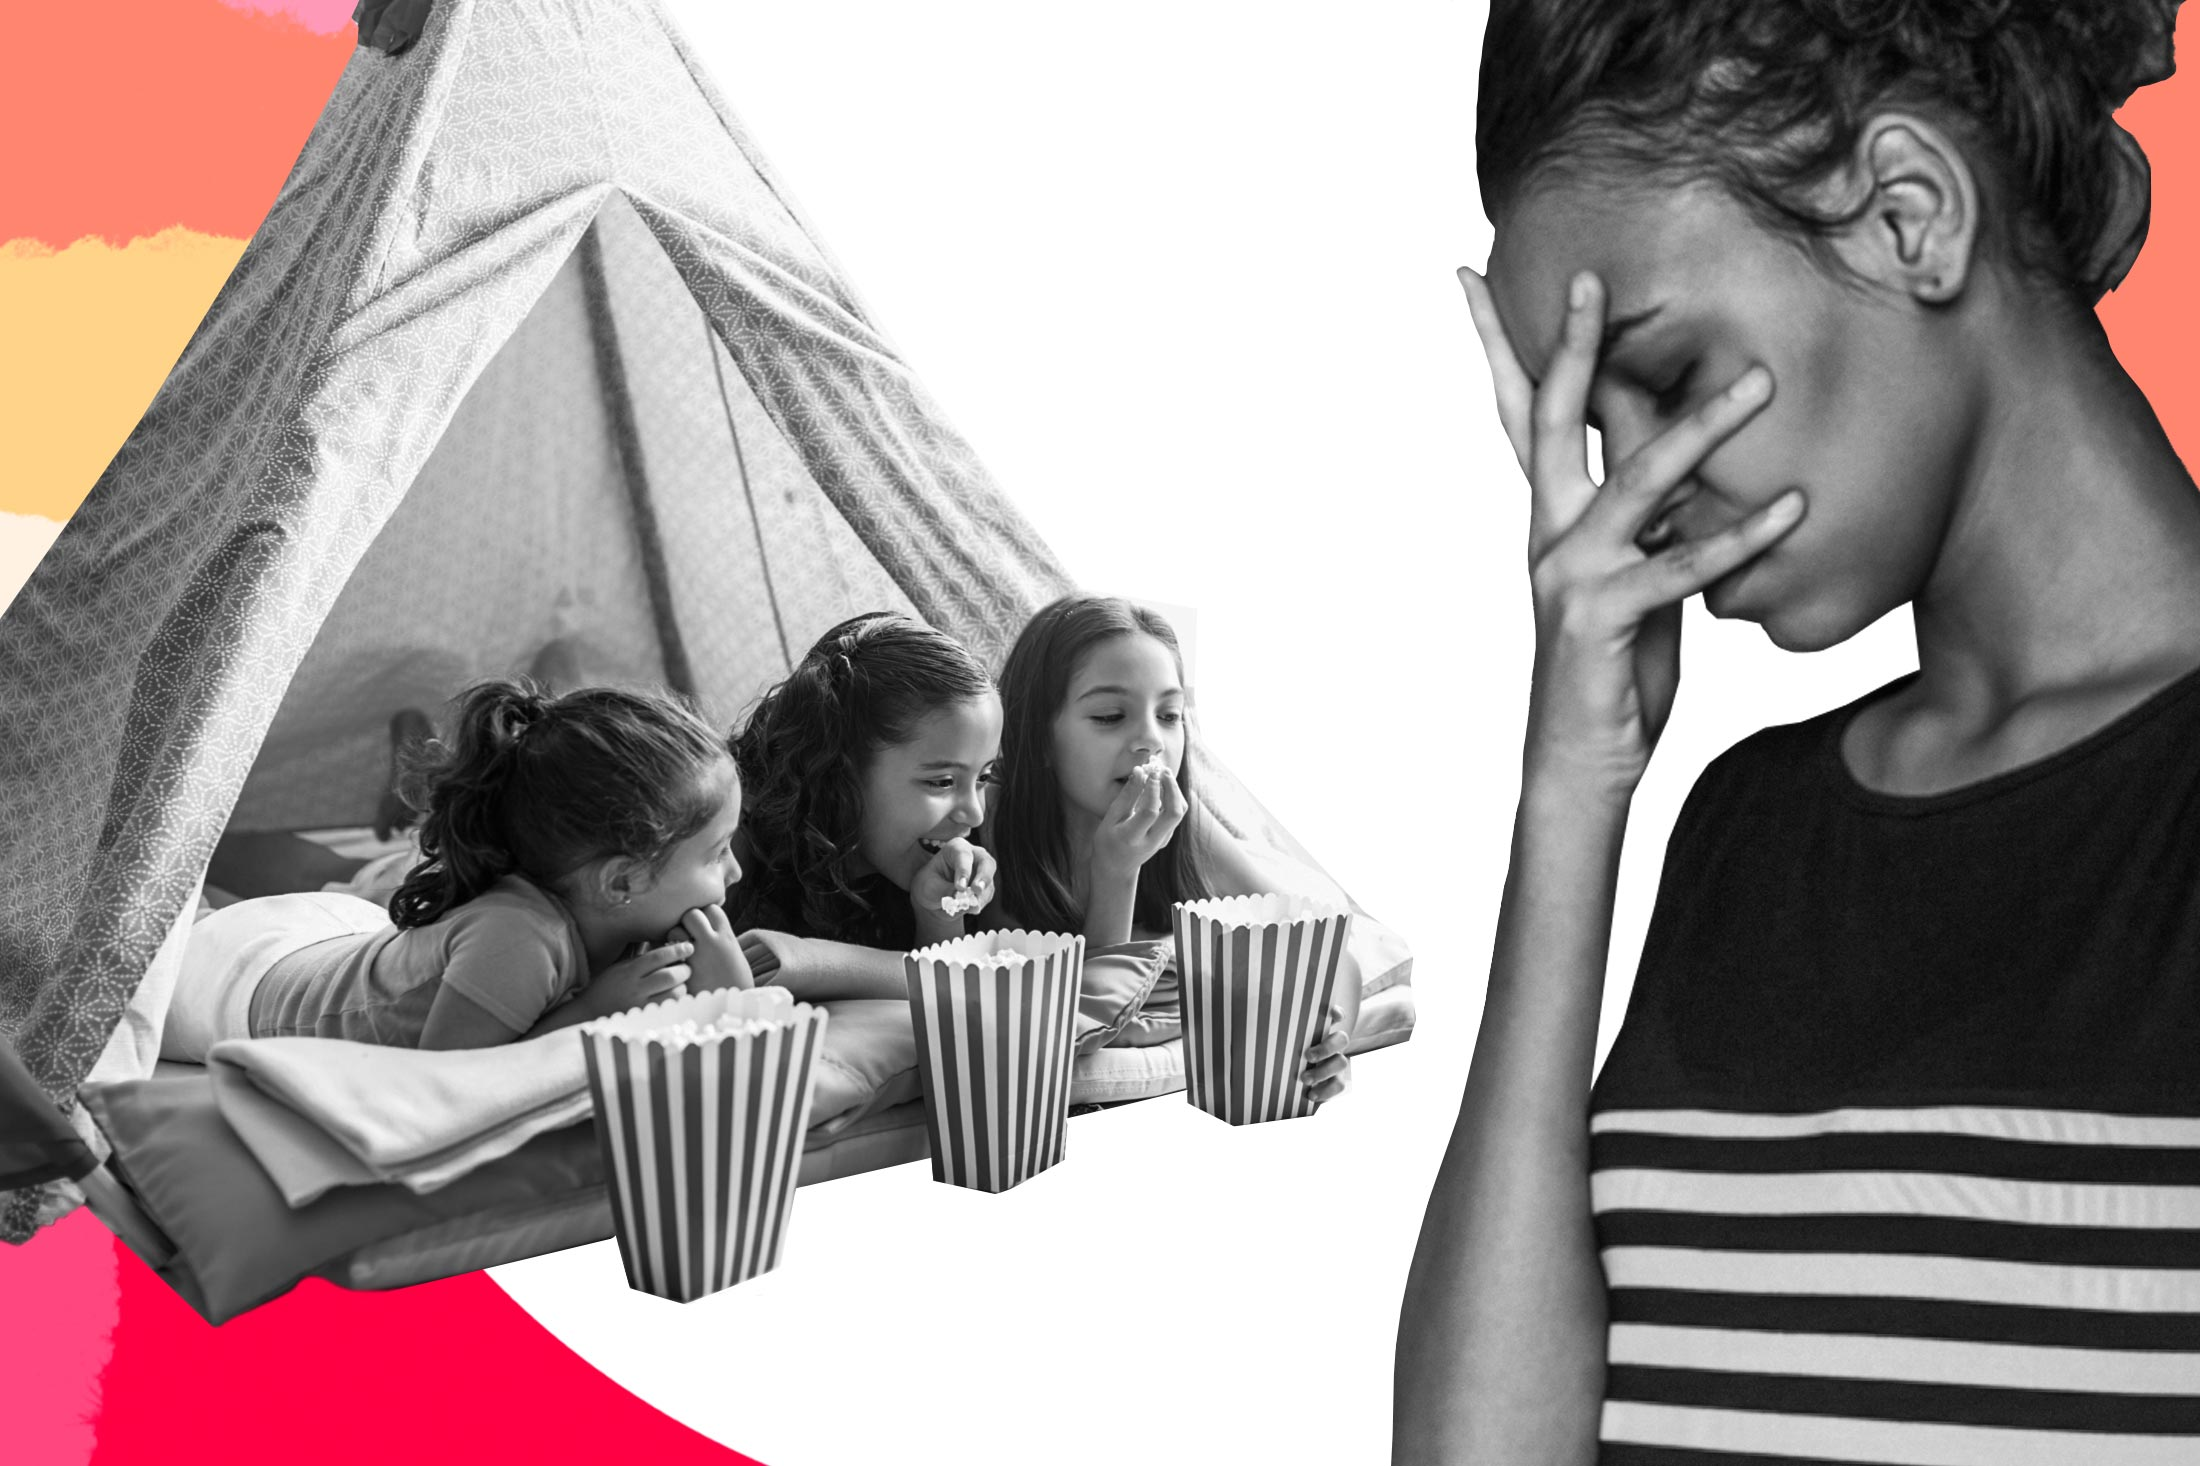 Collage of a woman putting her hand on her face in frustration, next to three kids eating popcorn in a tent at a sleepover.